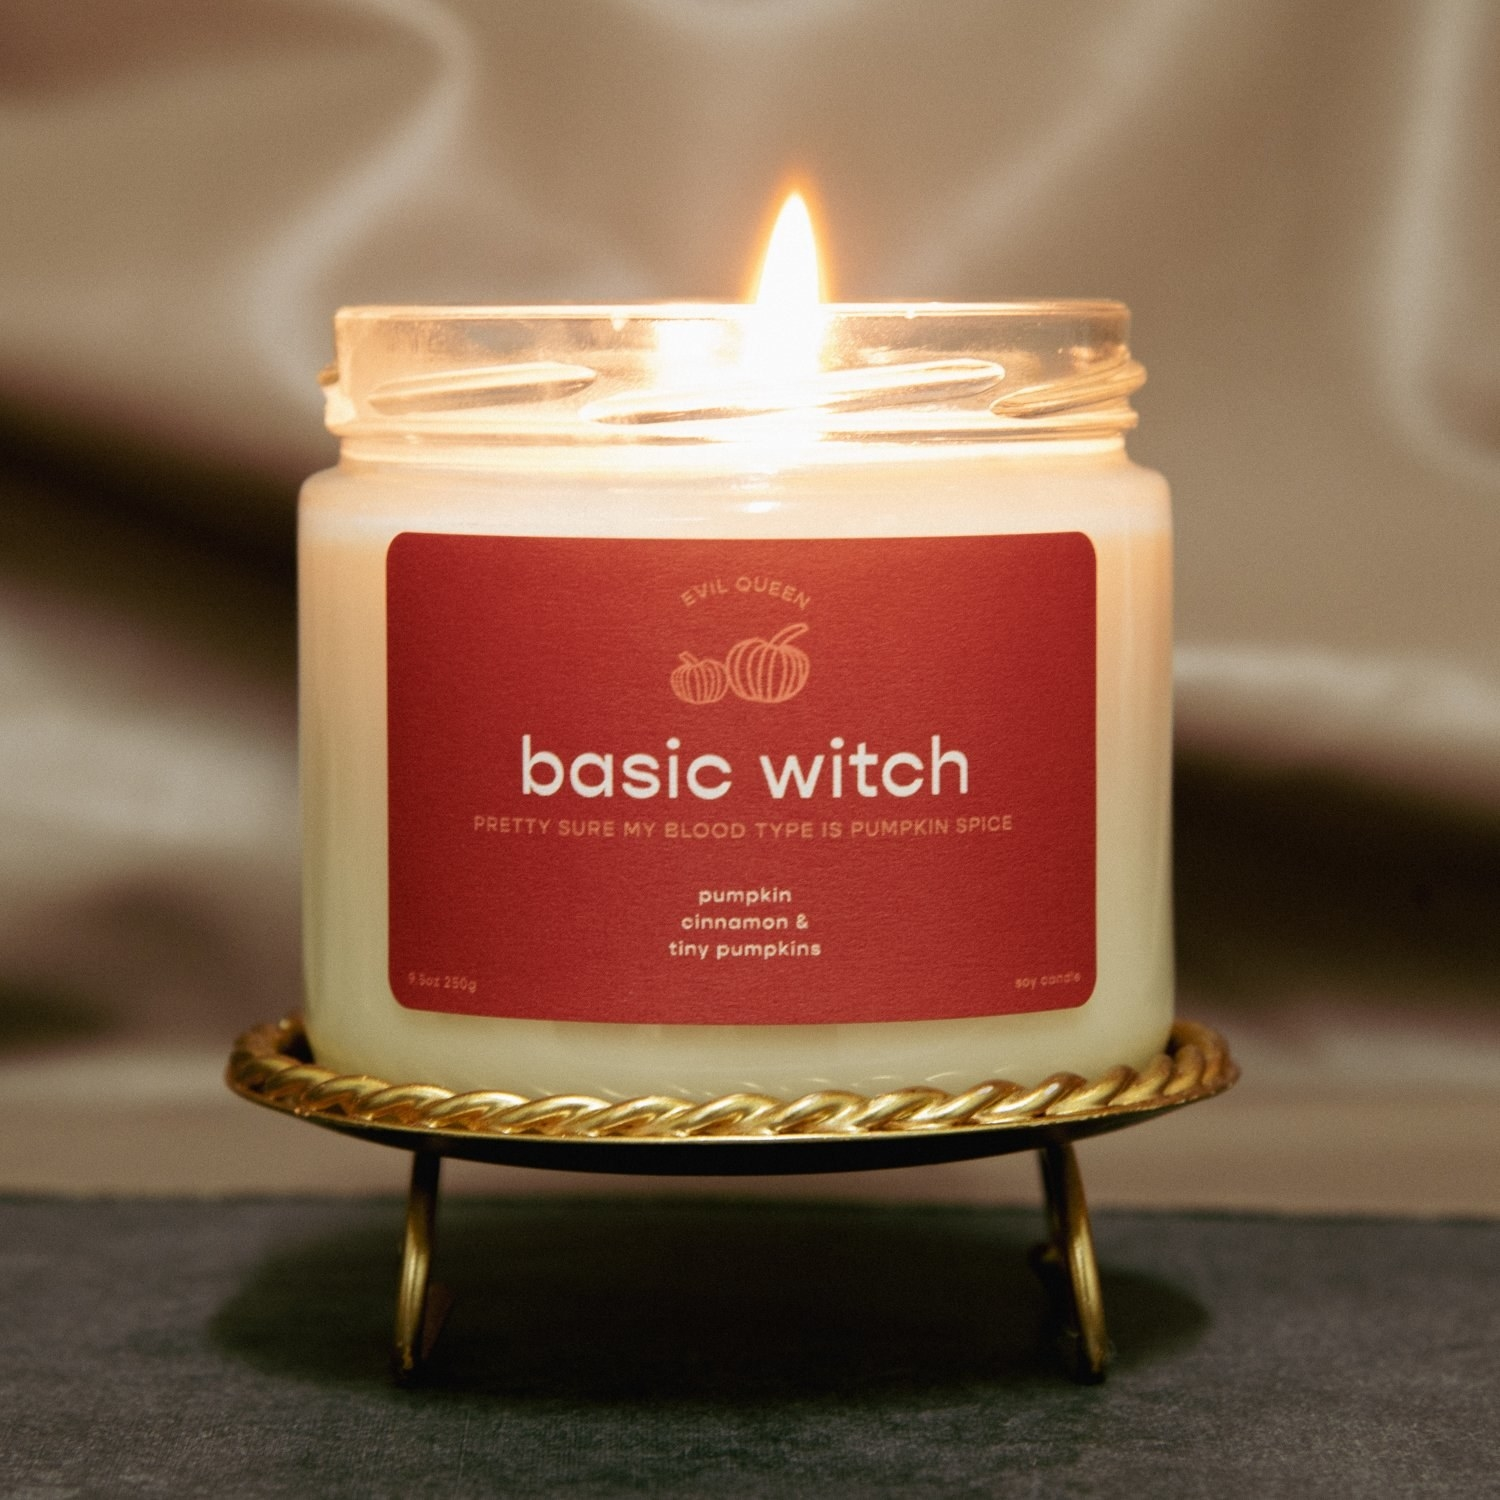 the Basic Witch candle